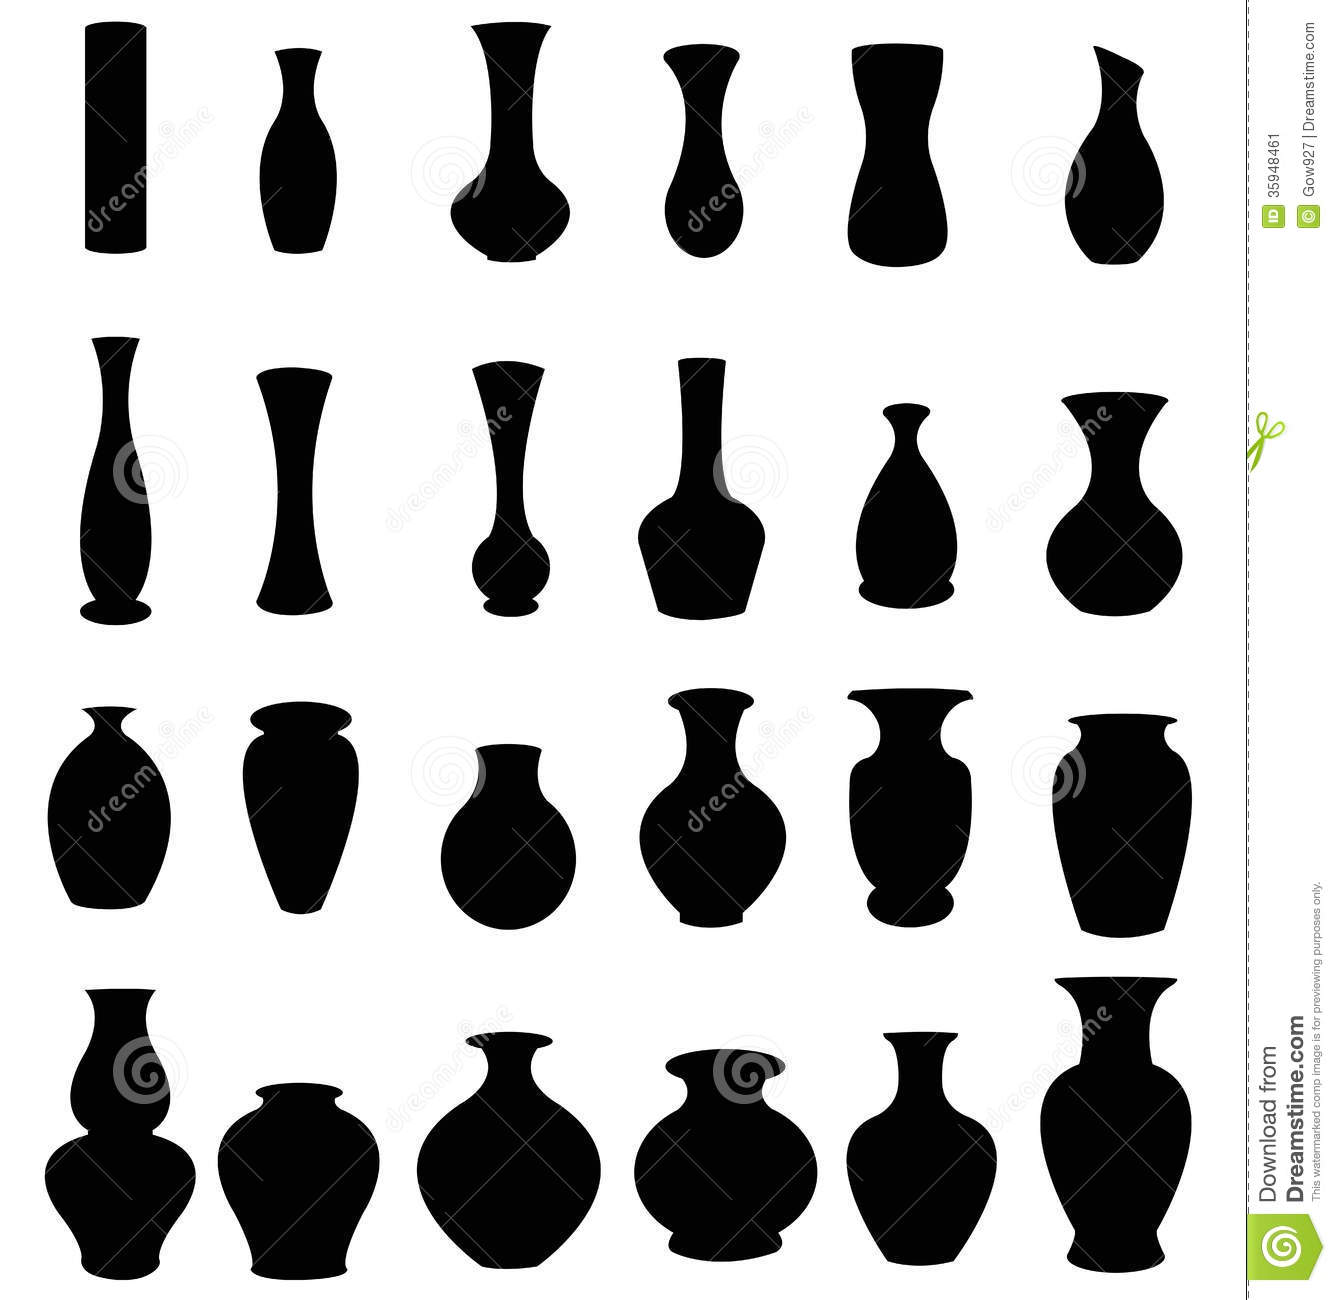 Set Of Silhouette Vases And Bottles Icon Stock Image Image 35948461